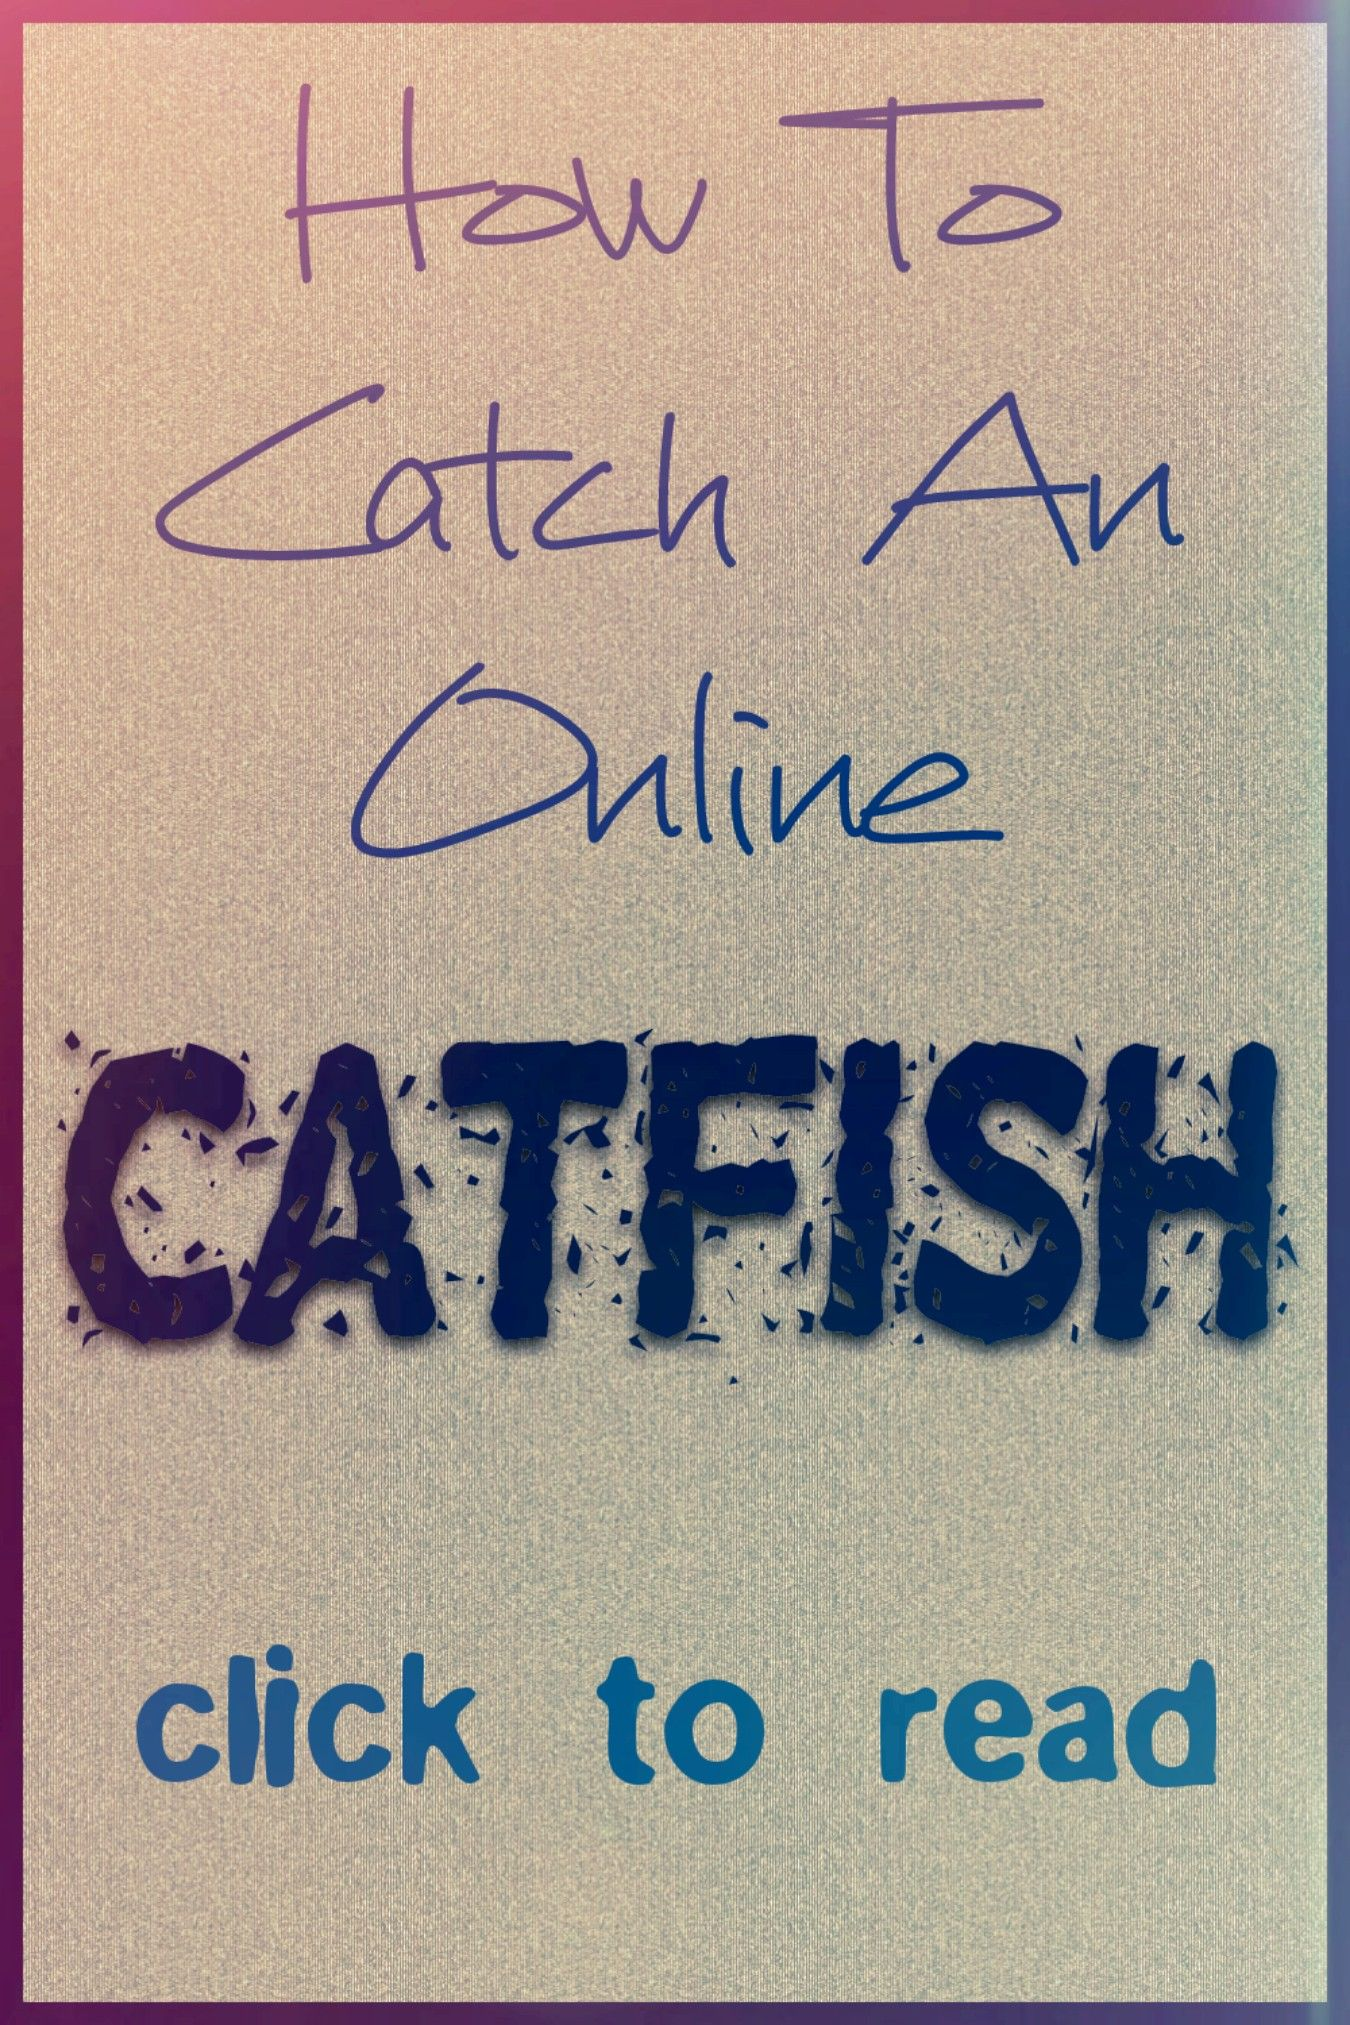 How To Catch A Catfish Online Dating